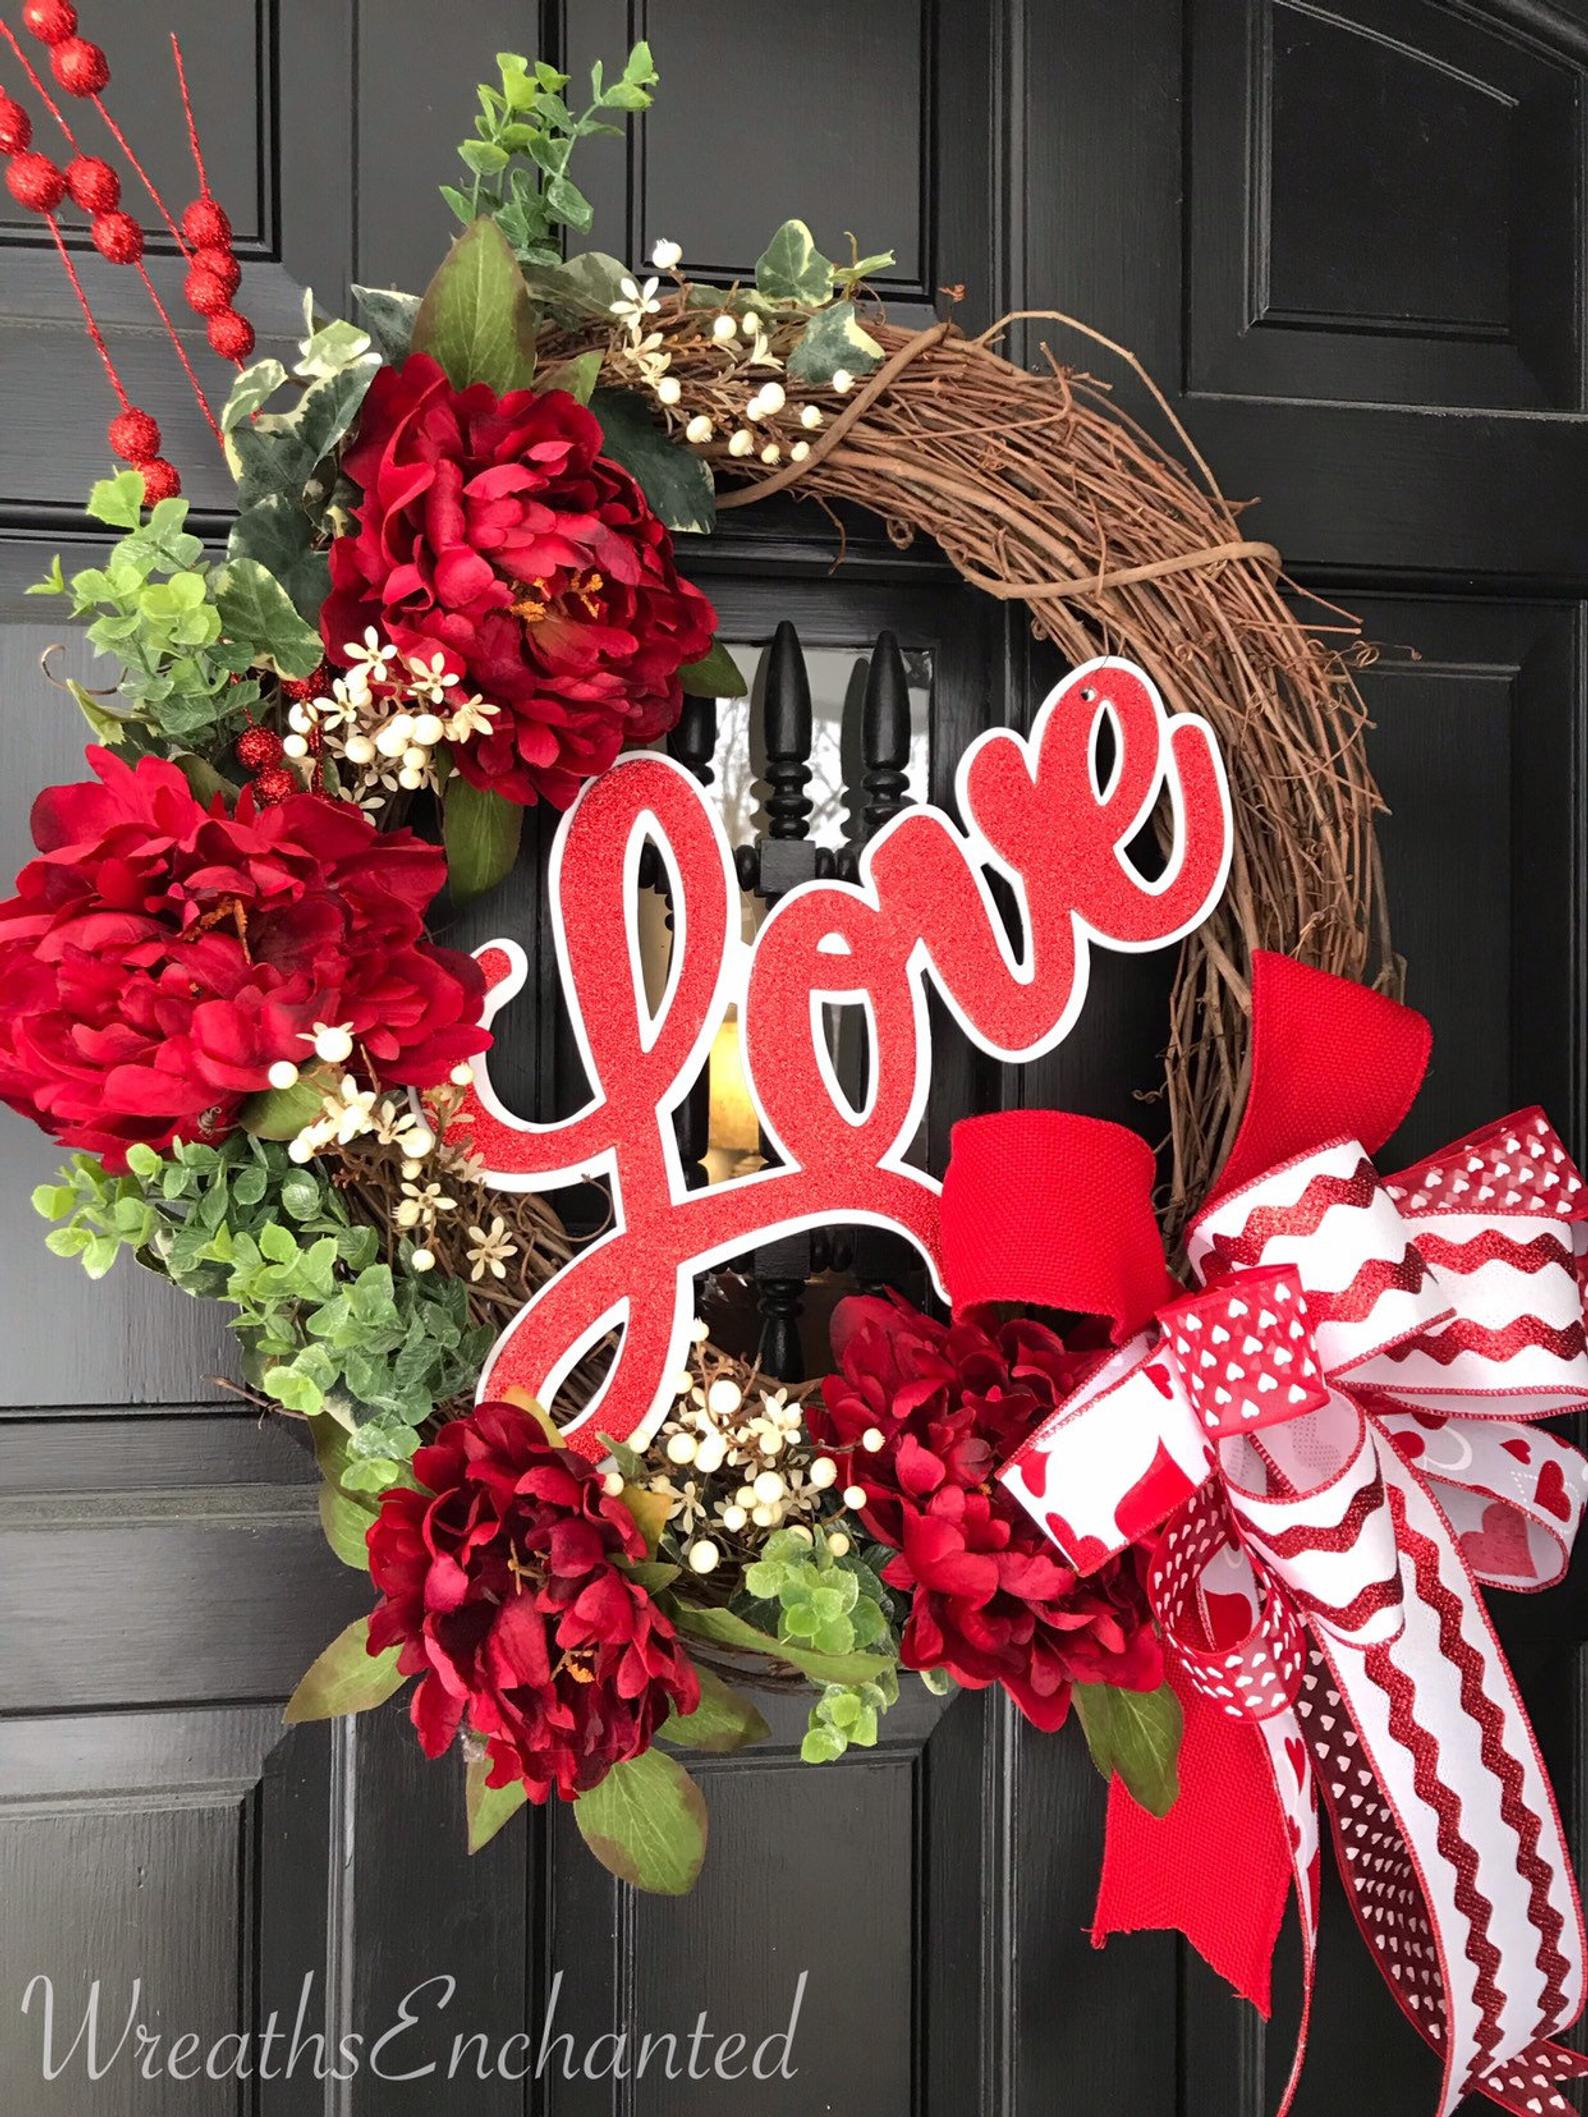 Red Valentine's Day wreath for front door with vine